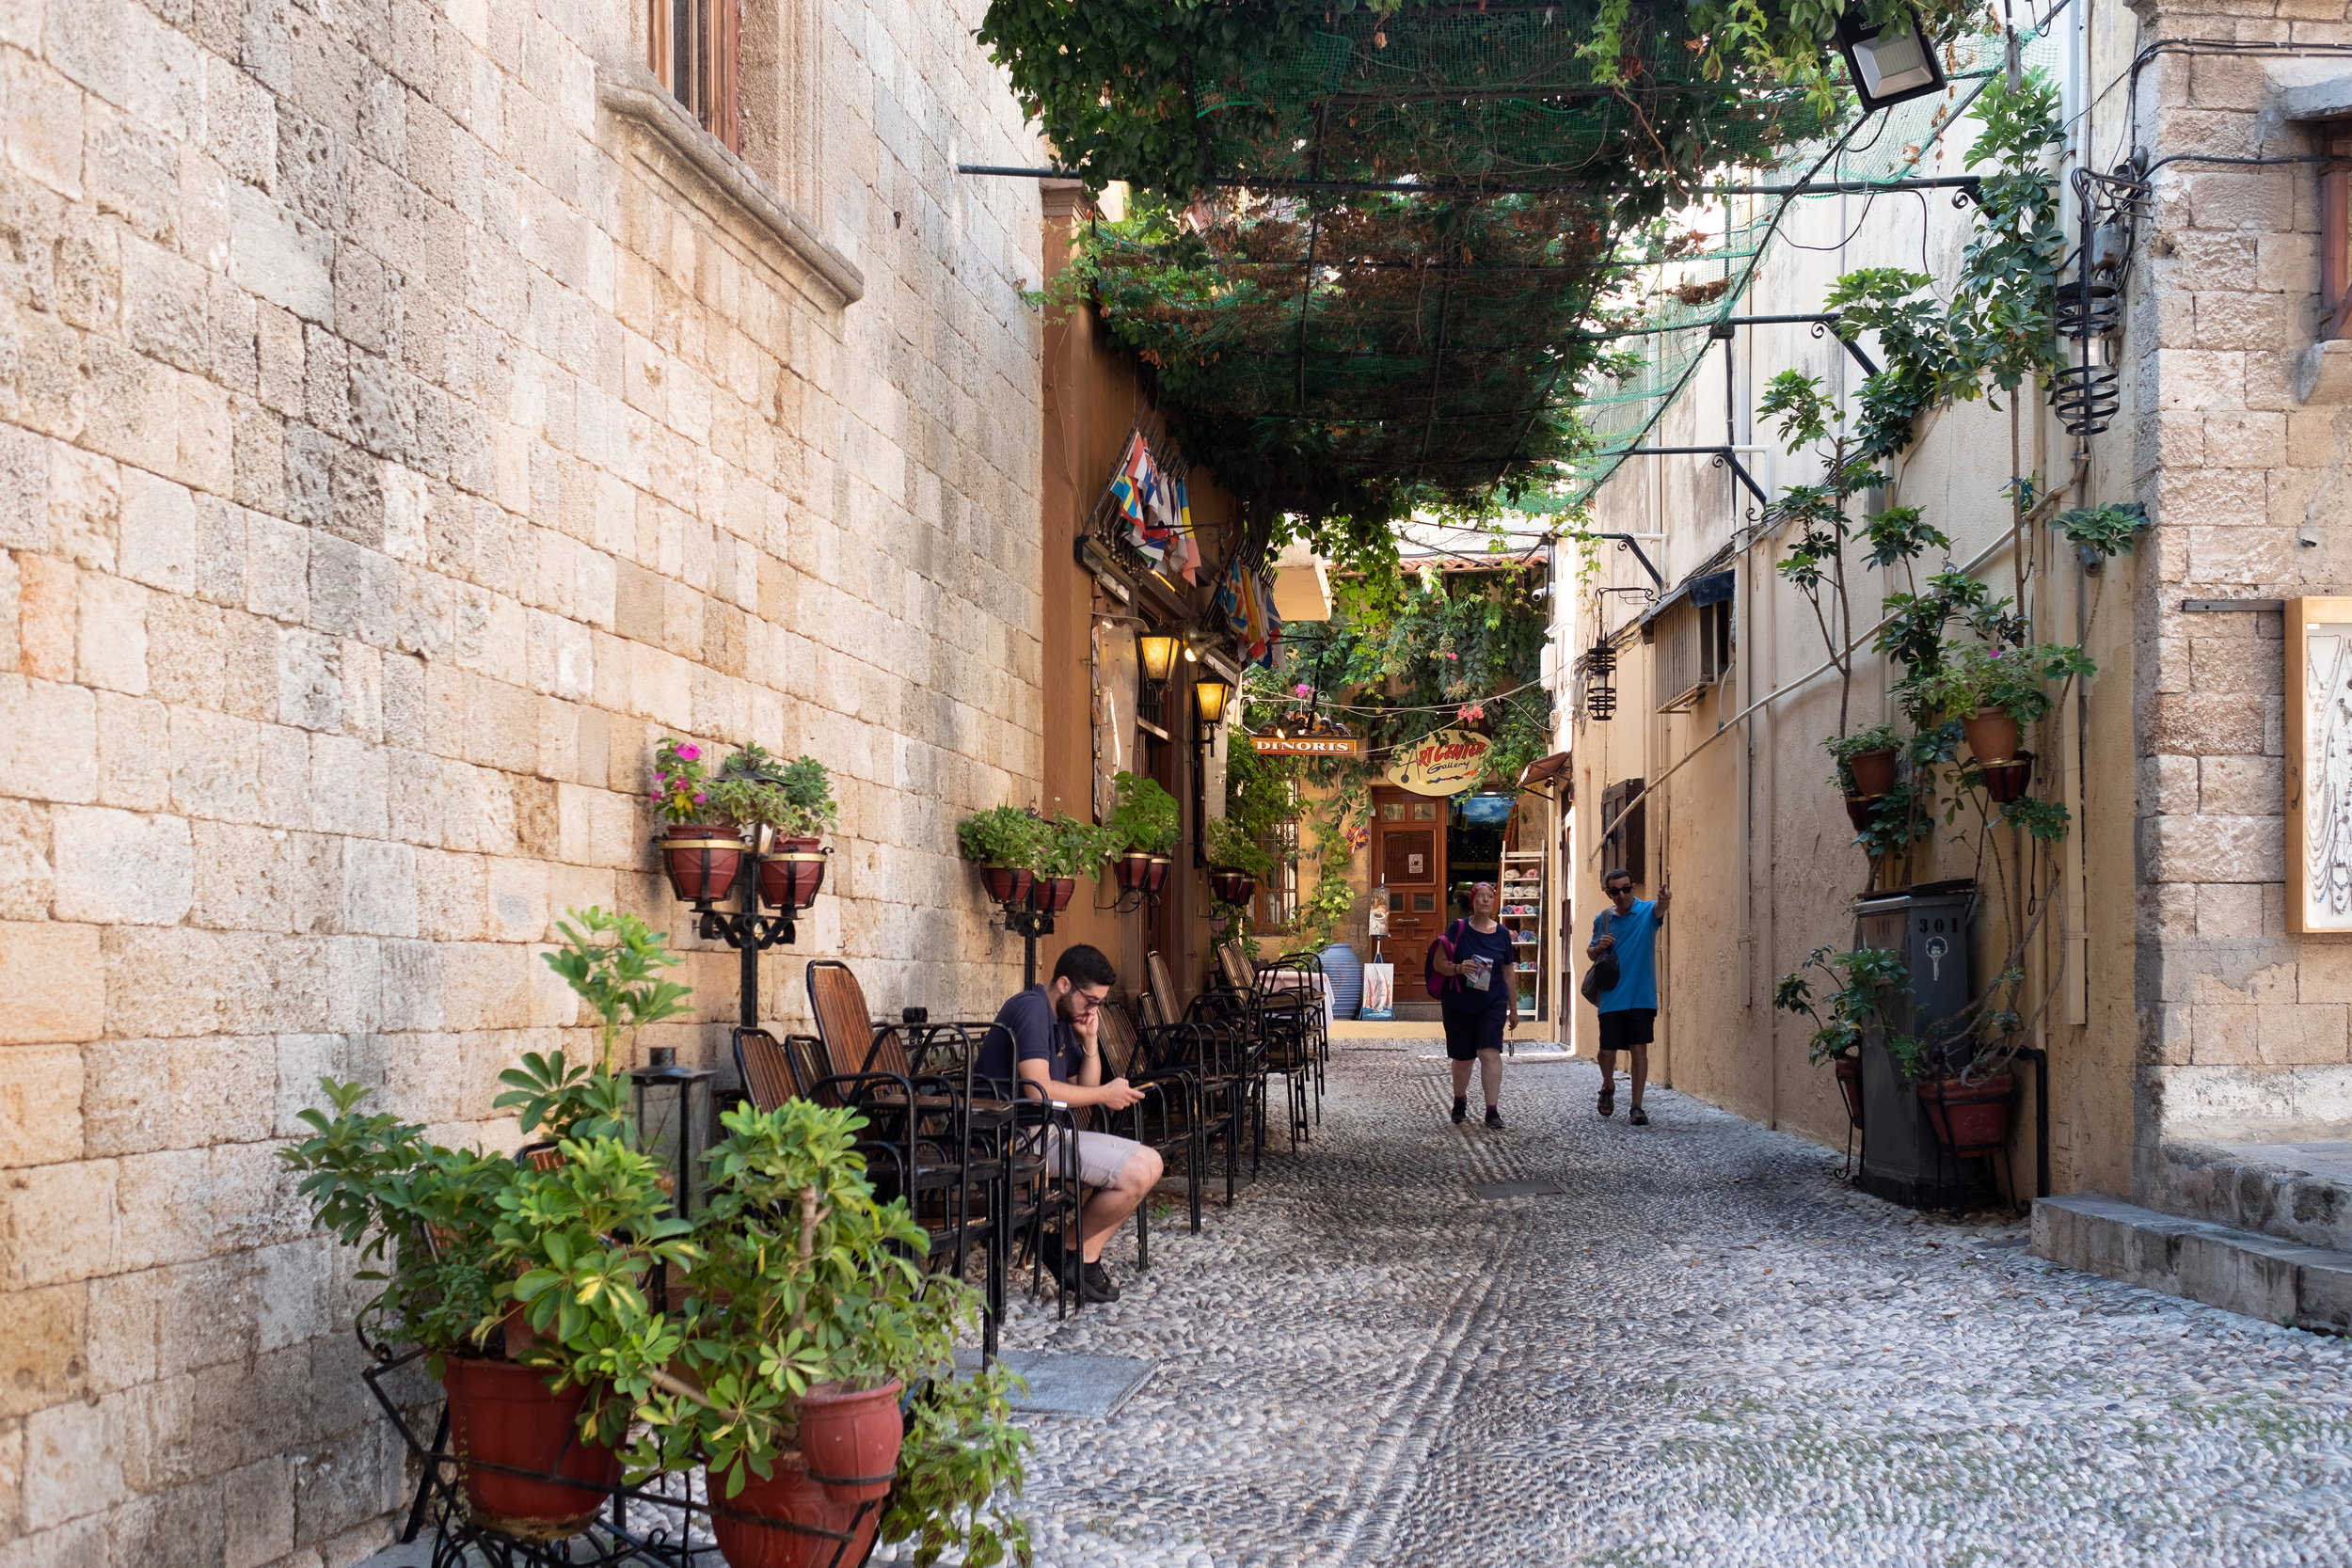 Narrow alleys in the old town Rhodes, Greece